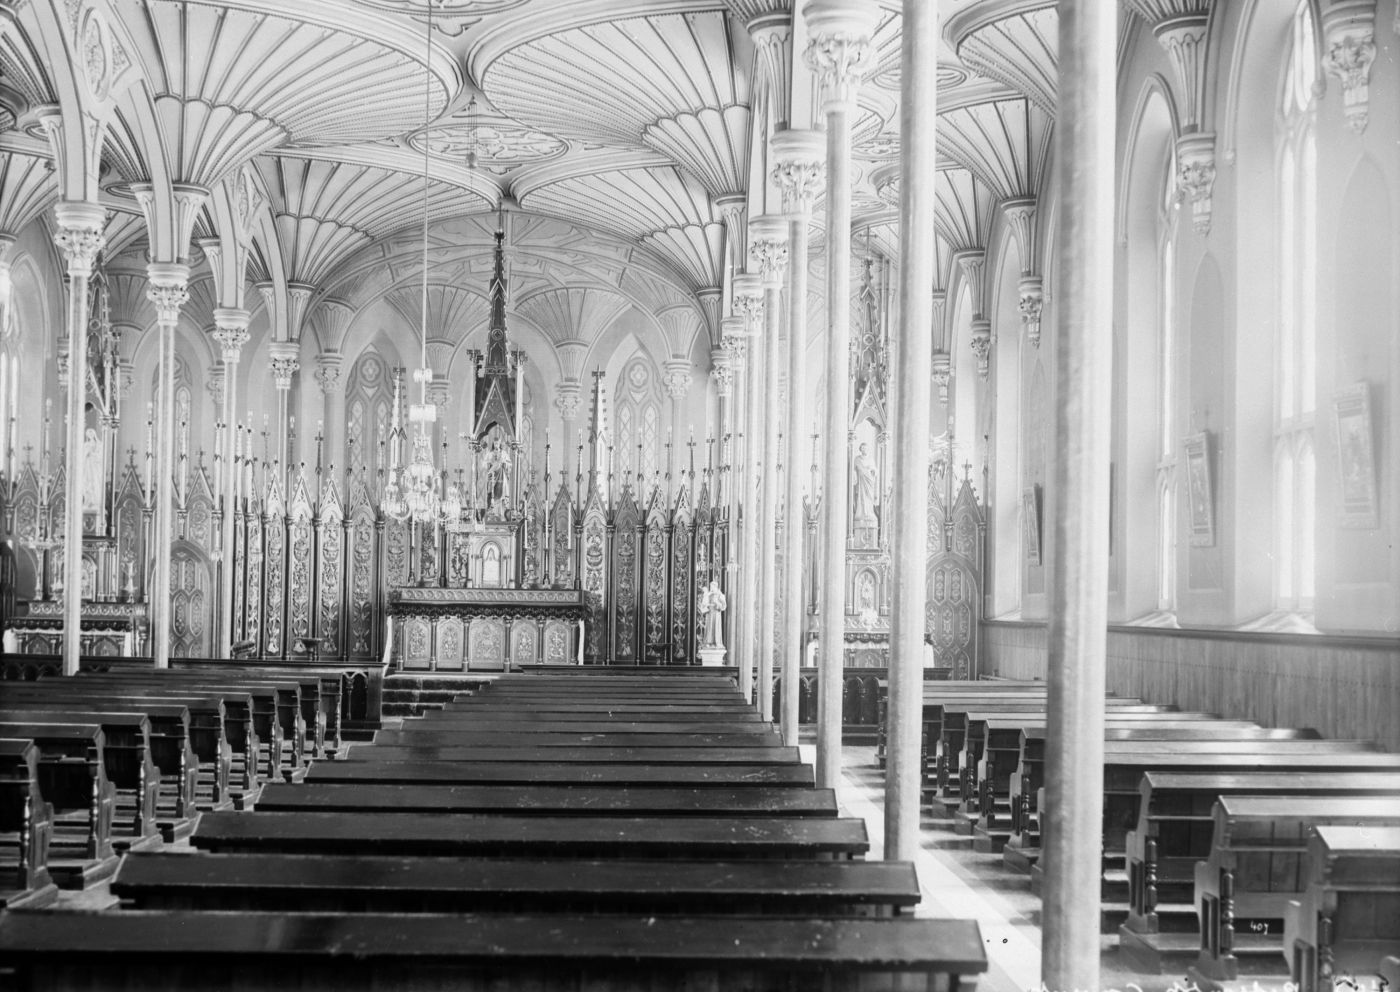 Black and white photograph of the interior of a small church, with many benches in rows. The vaulted ceiling, made of carved wood, is supported by thin columns. The altar is very ornate.